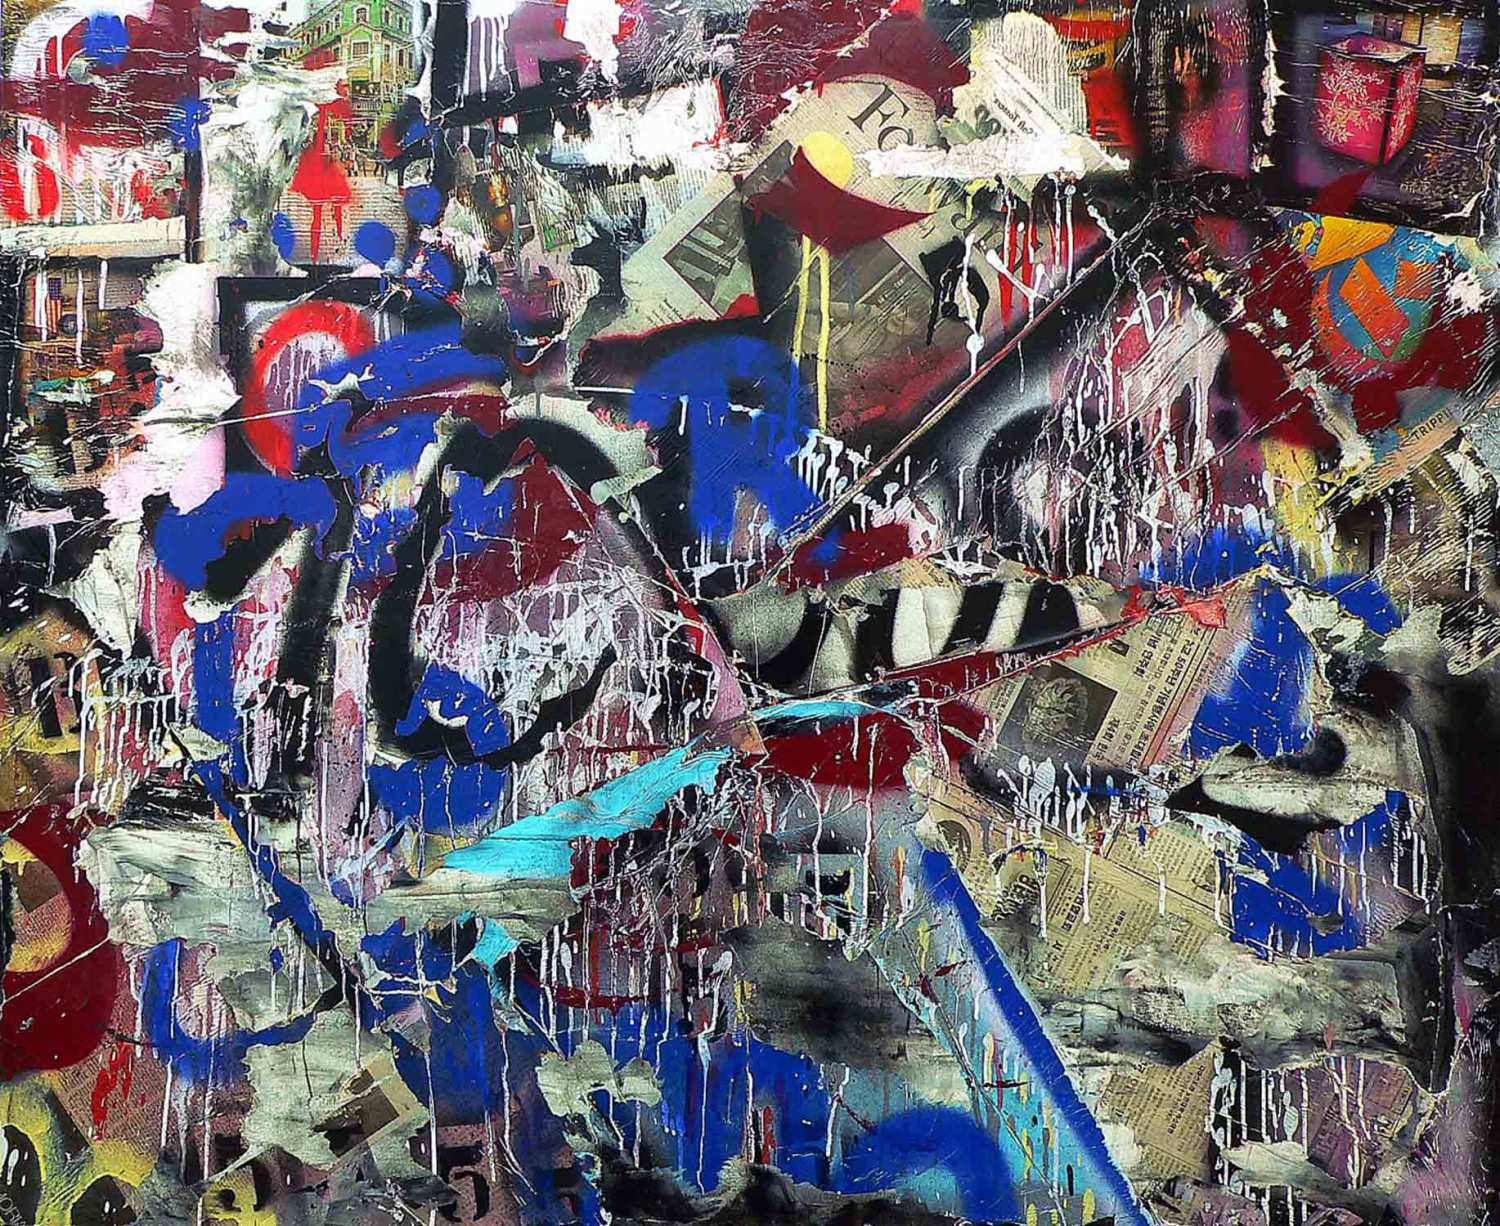 it never entered my mind - 116 x 140 cm - acrylic, spray paint and mixed media collage on canvas - 2010